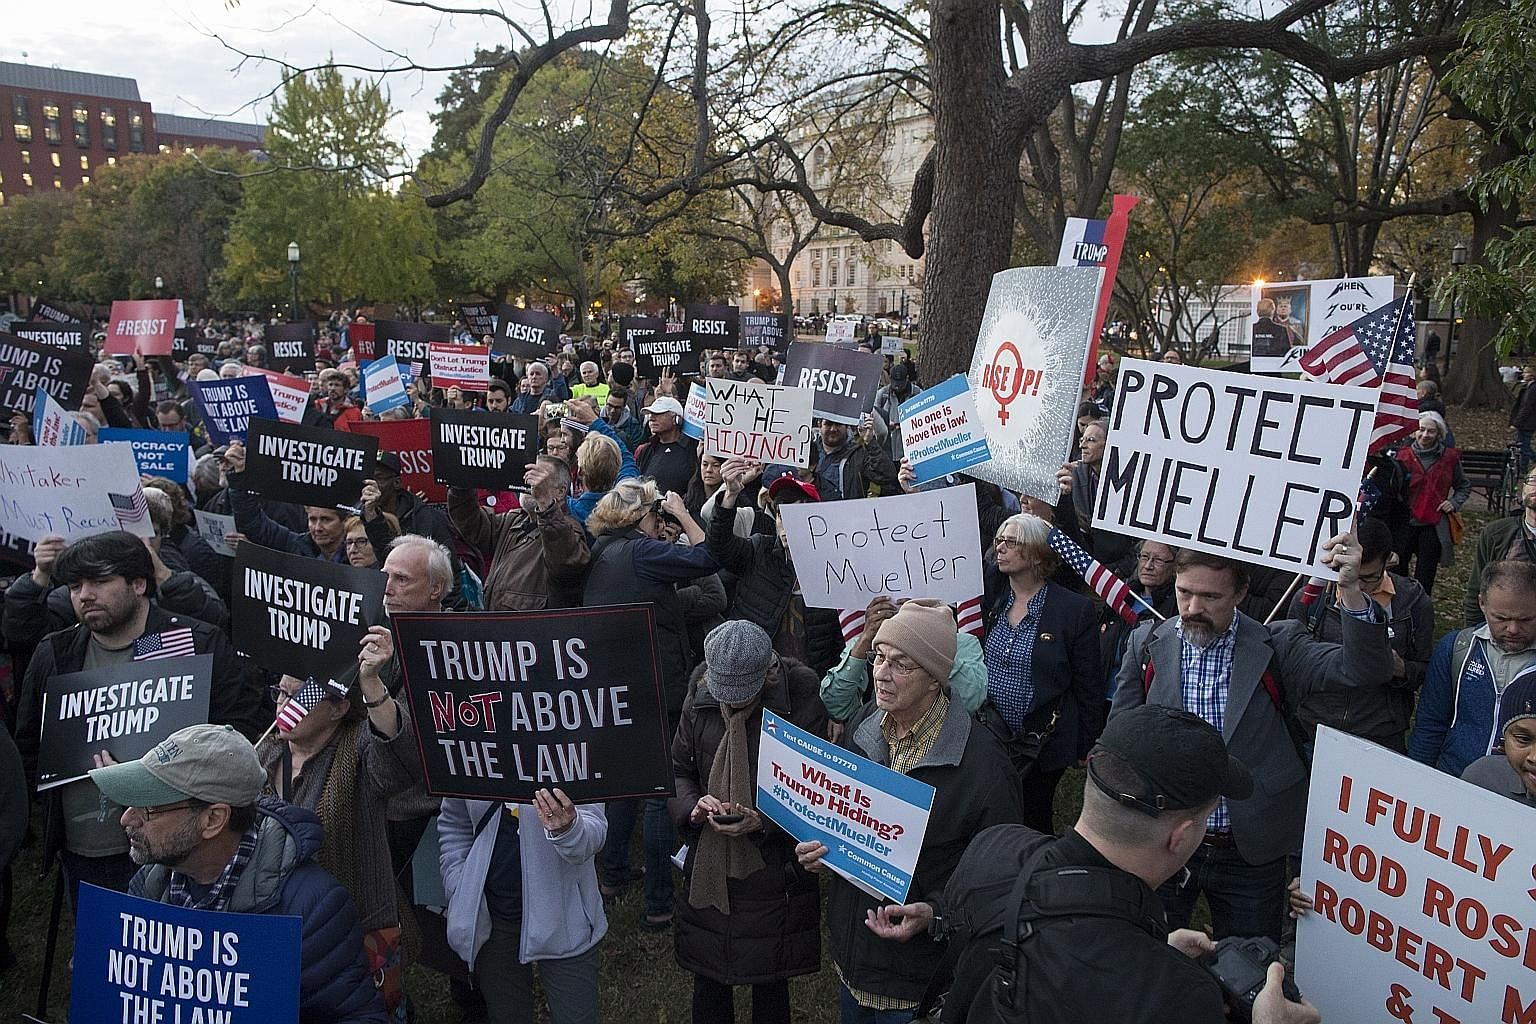 Protesters rallying against the removal of attorney-general Jeff Sessions and President Donald Trump's appointment of Mr Matt Whitaker as Acting A-G last week, prompting fears over the fate of special counsel Robert Mueller's probe into alleged Russi